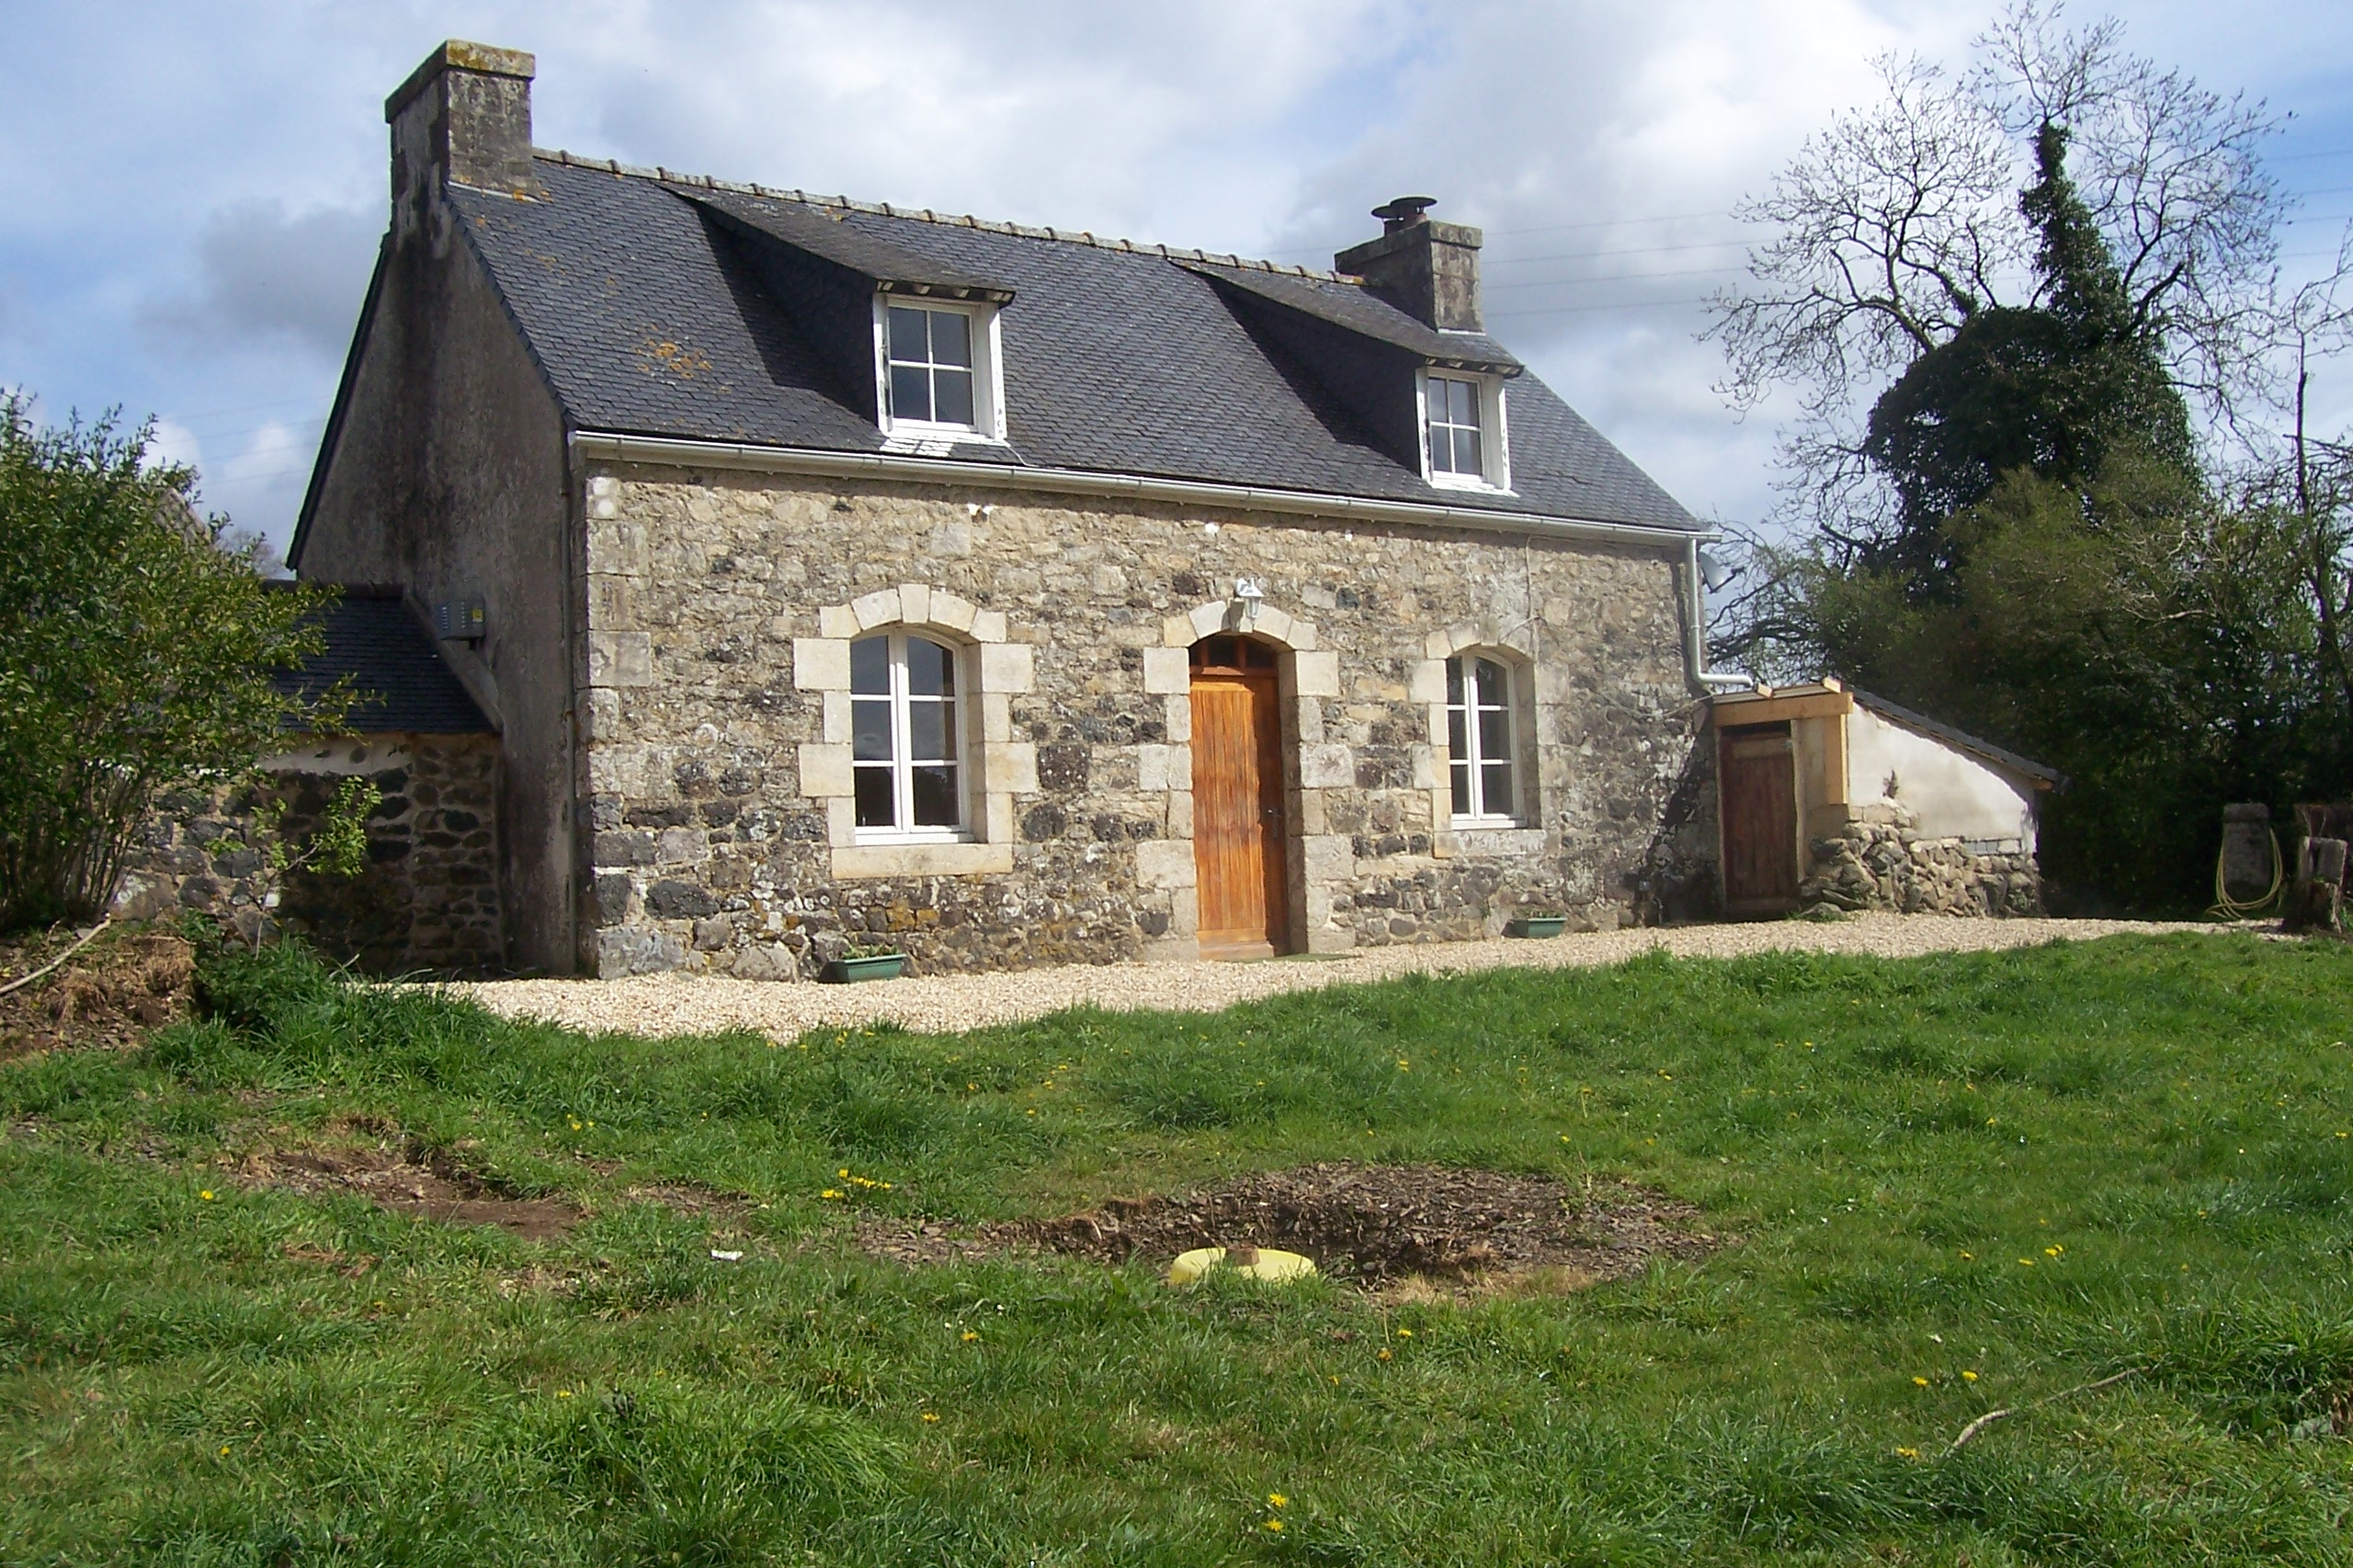 Brittany property for sale english speaking agents in brittany france sa - Jardin maison de campagne ...